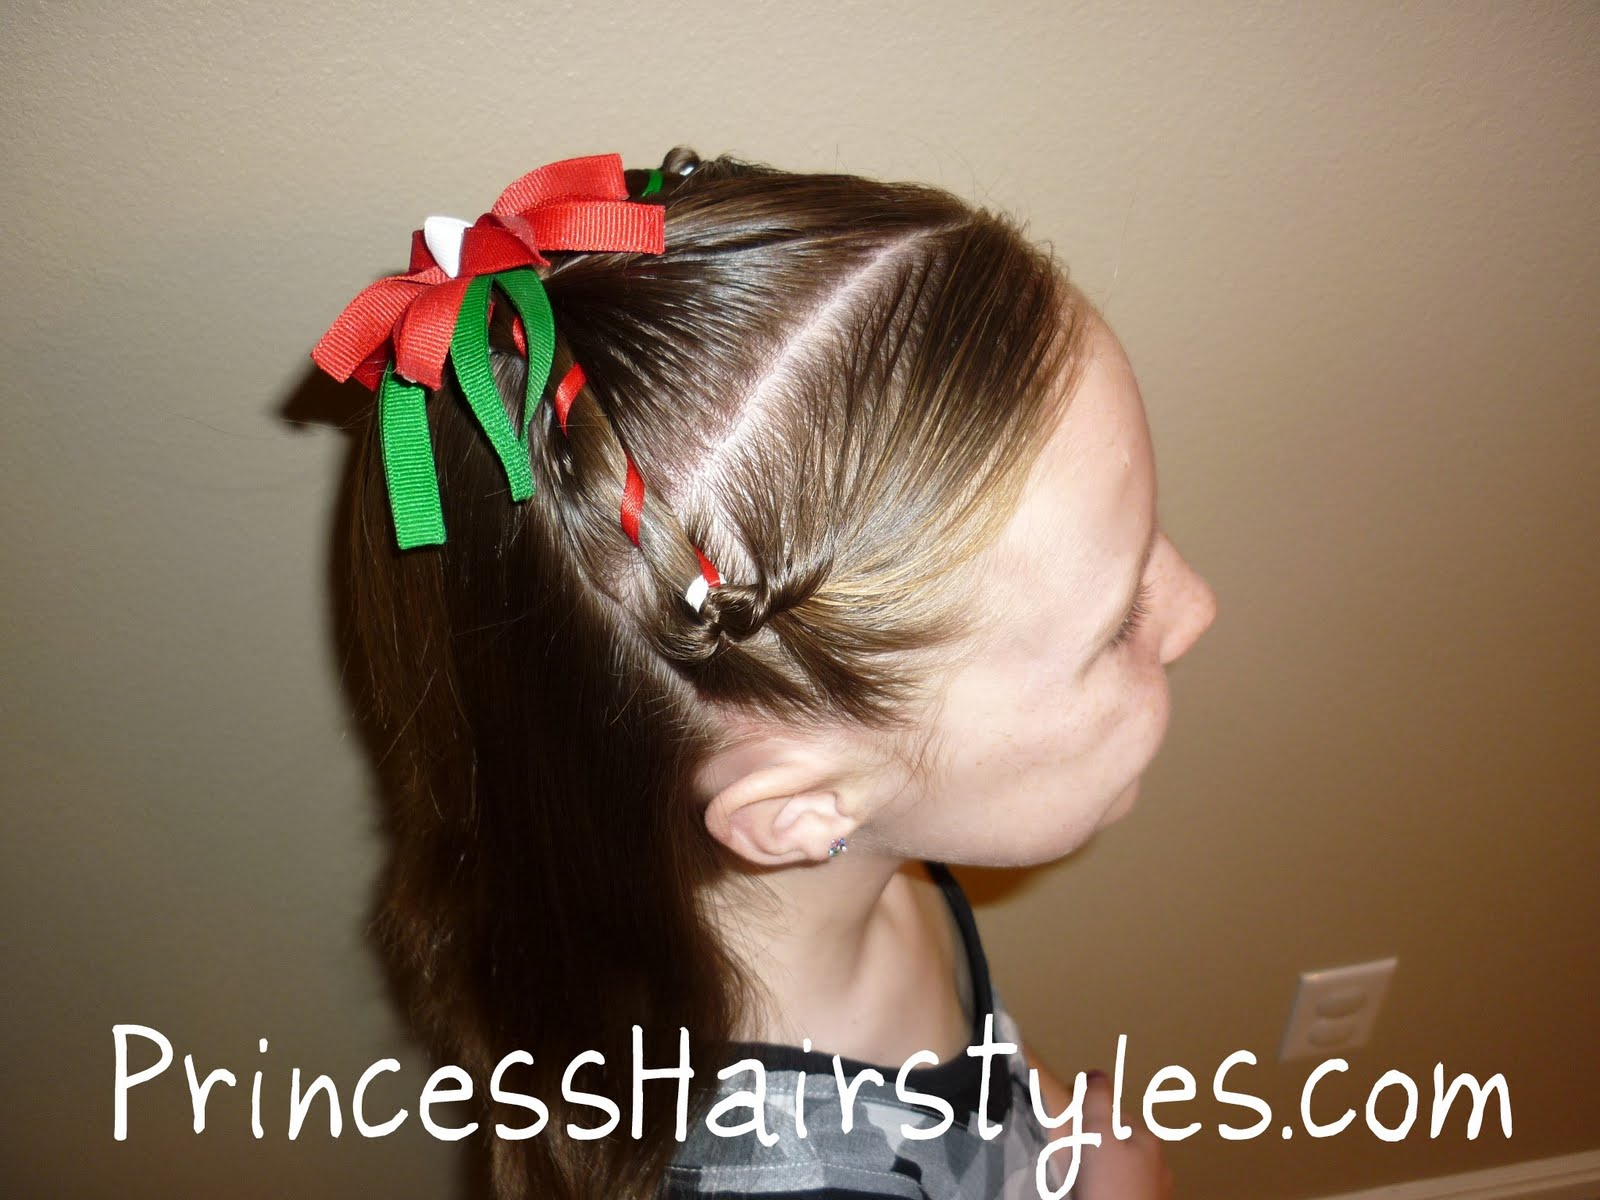 christmas hairstyle - easy | hairstyles for girls - princess